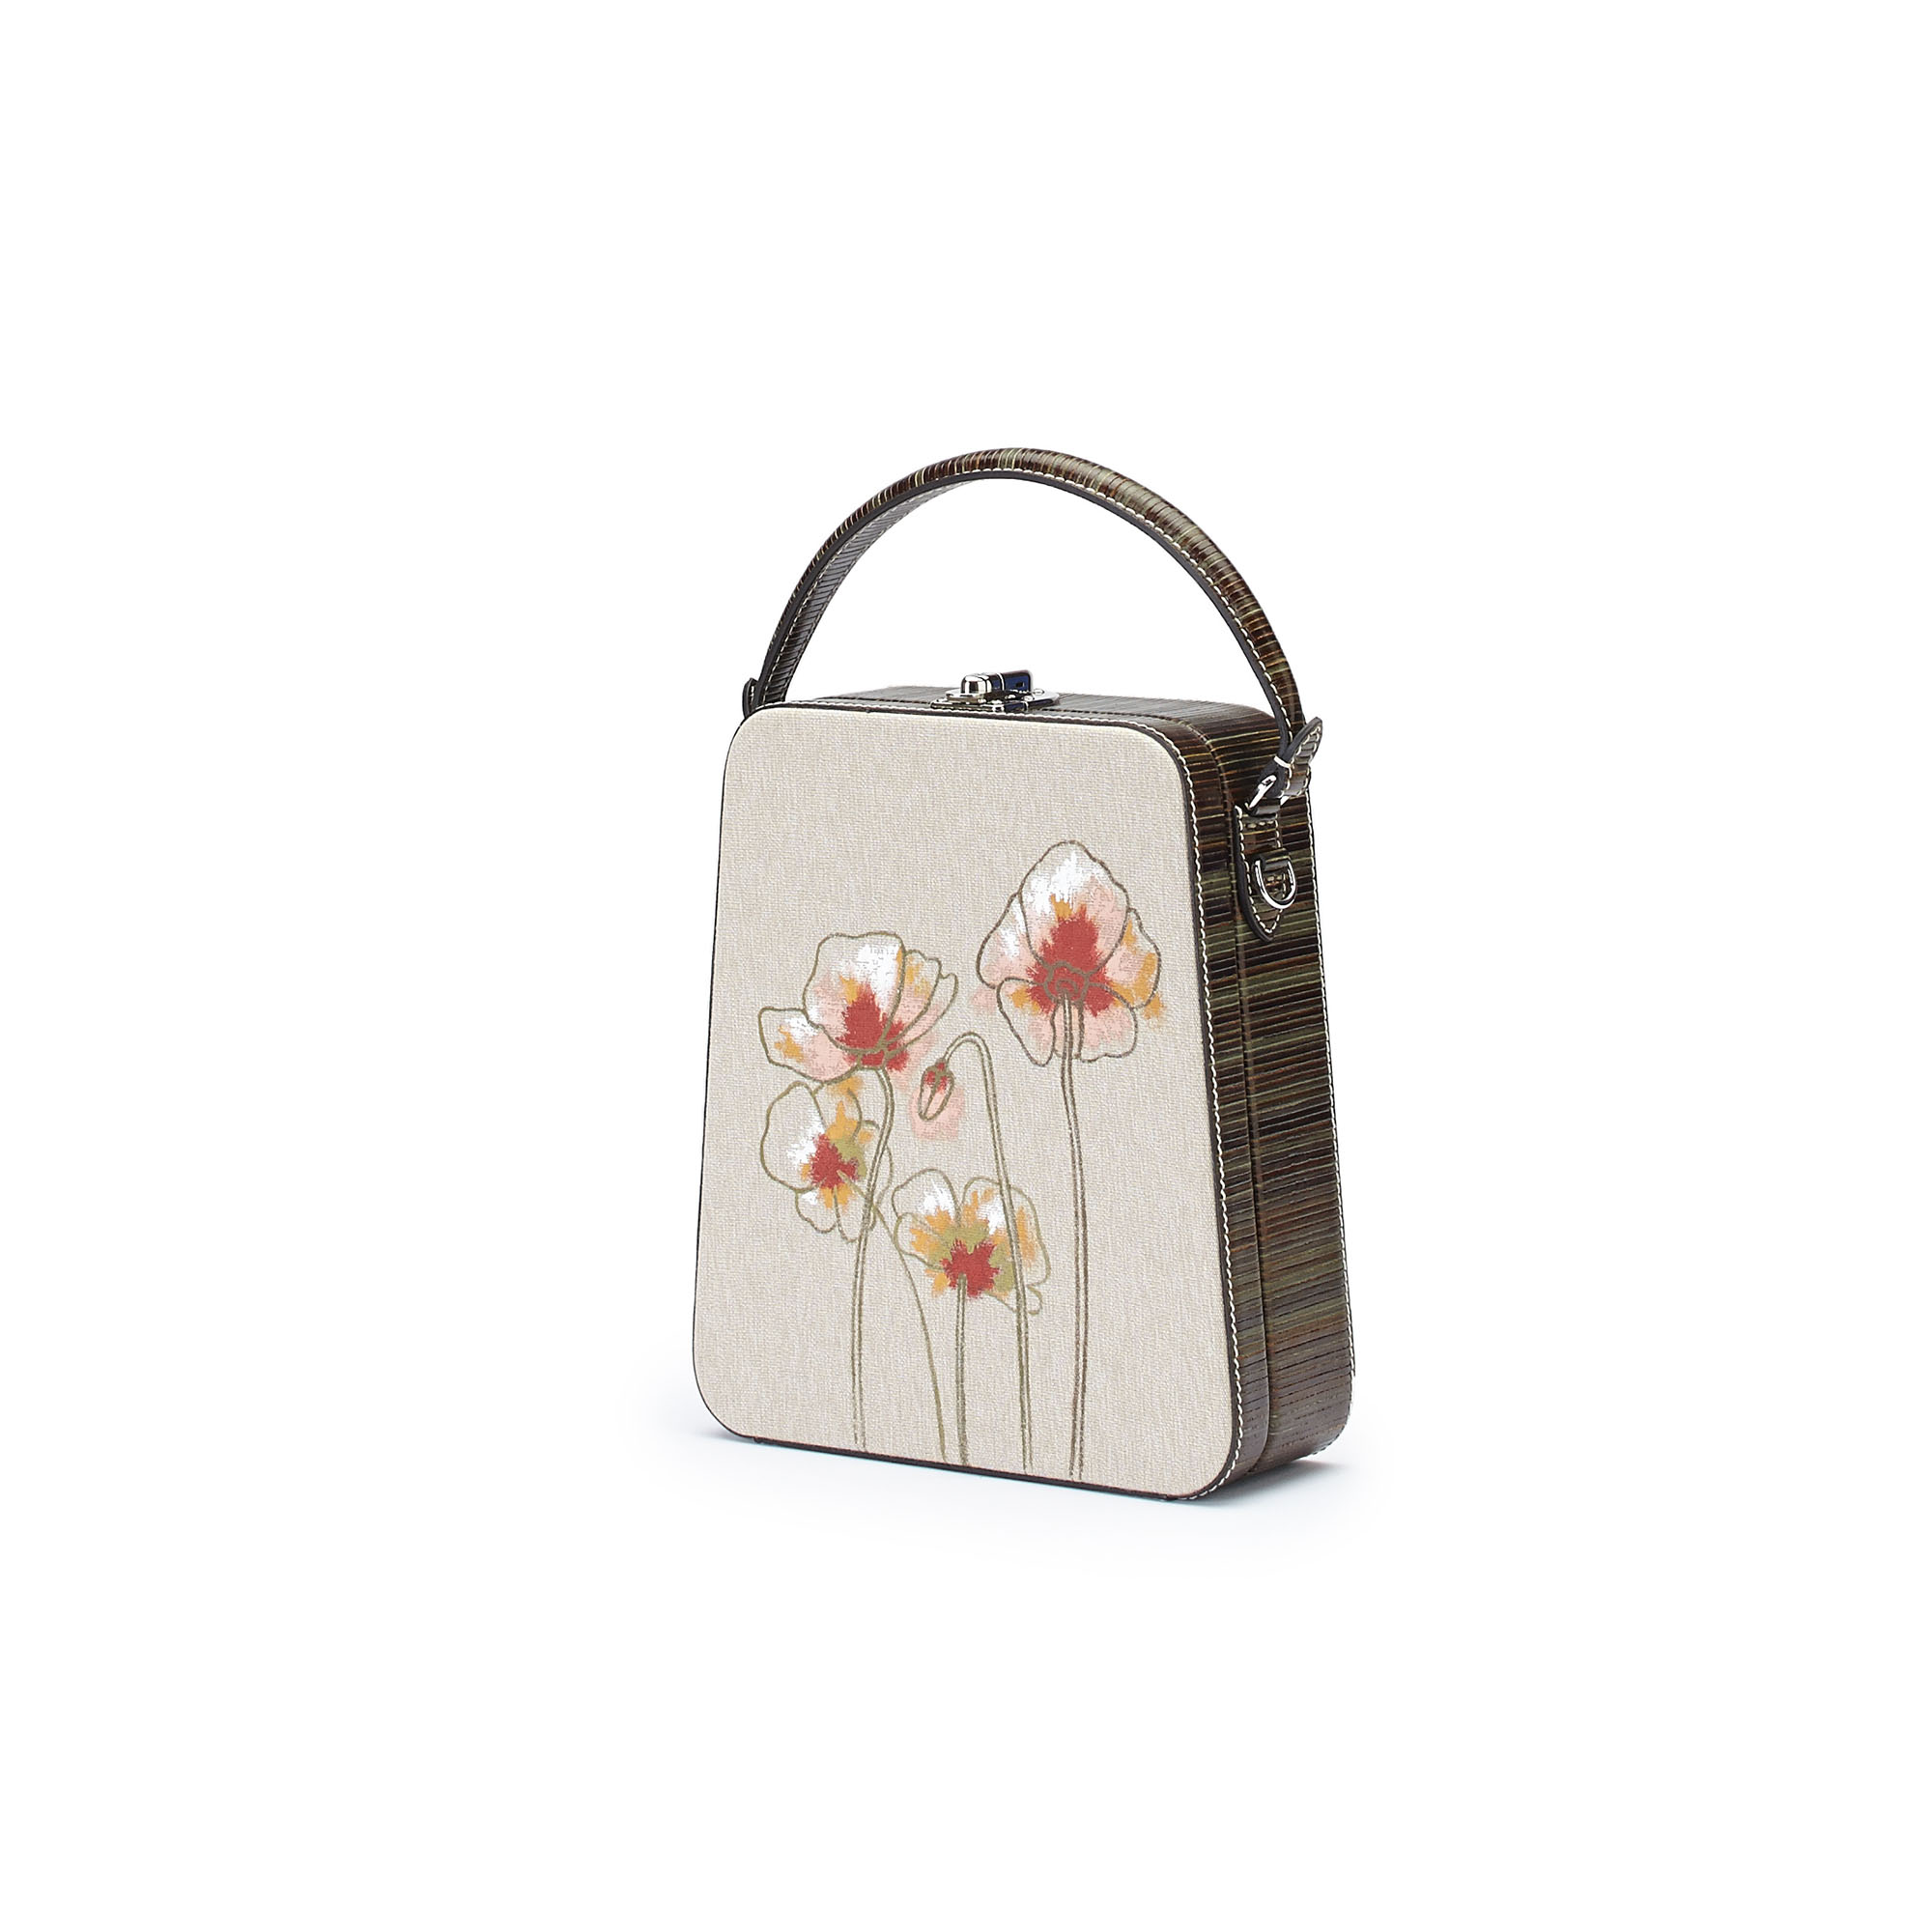 The military green with Poppy flowers wood leather canvas Tall Bertoncina bag by Bertoni 1949 02